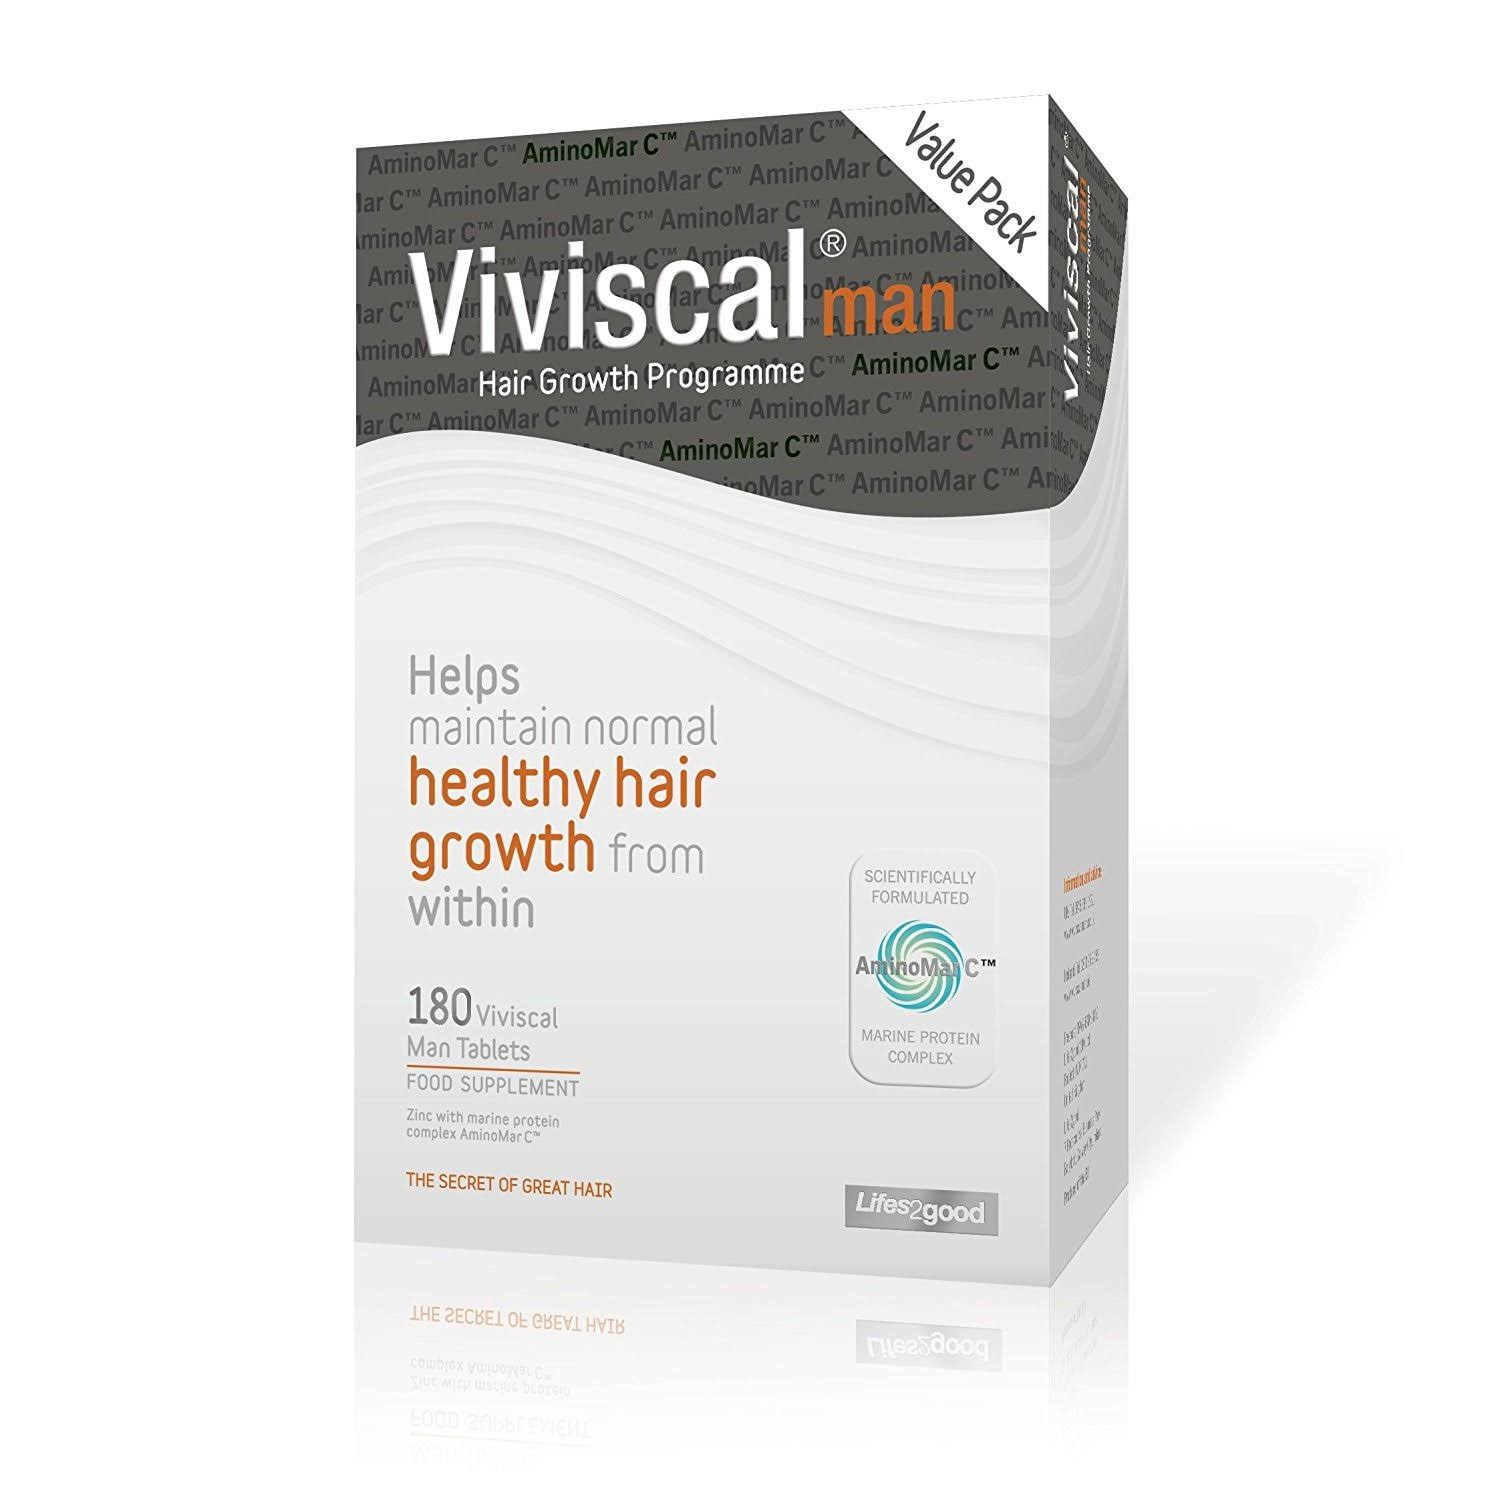 Viviscal Man Value Pack - 180 Tablets